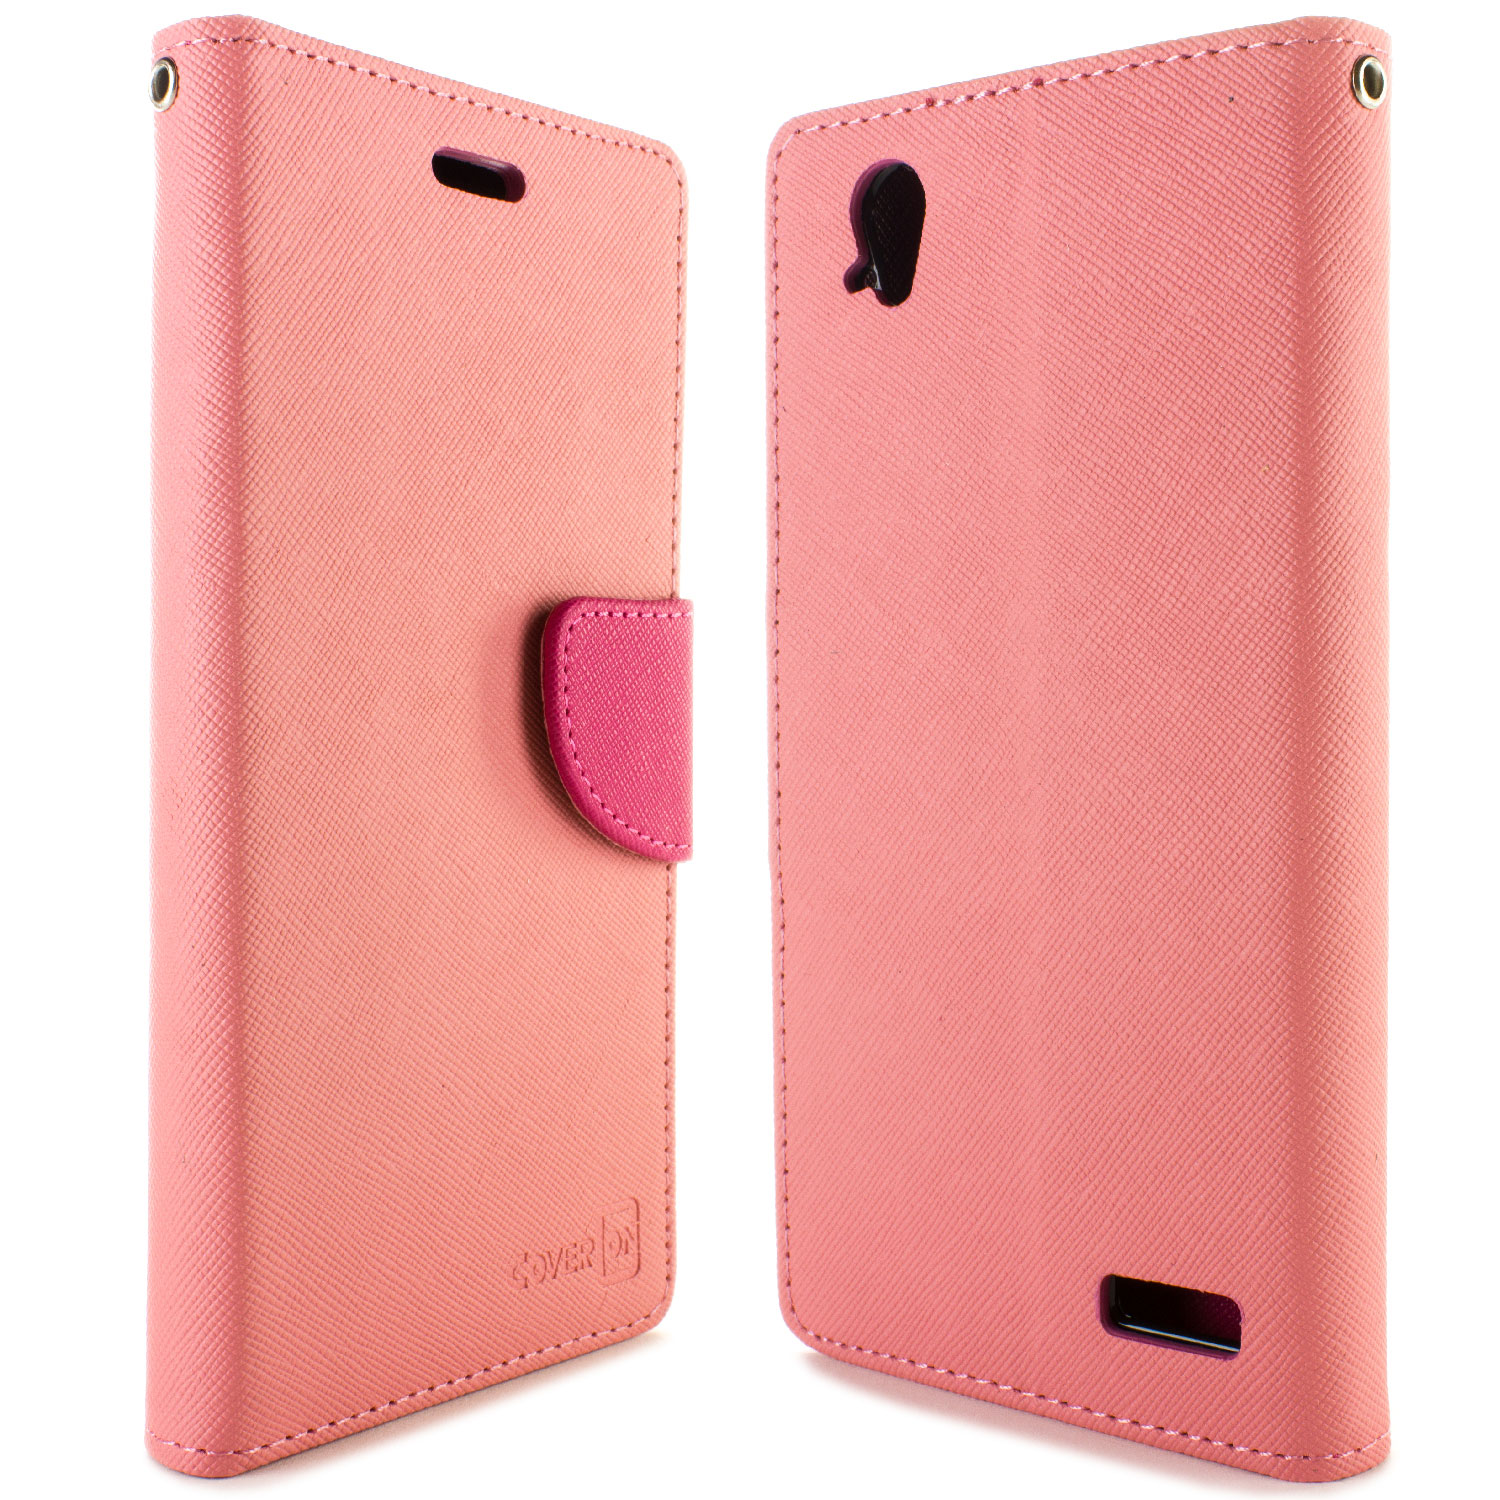 premium selection c08ce d1f44 Details about Light Pink & Hot Pink Wallet Folio Phone Case For ZTE Warp  Elite N9518 + Screen